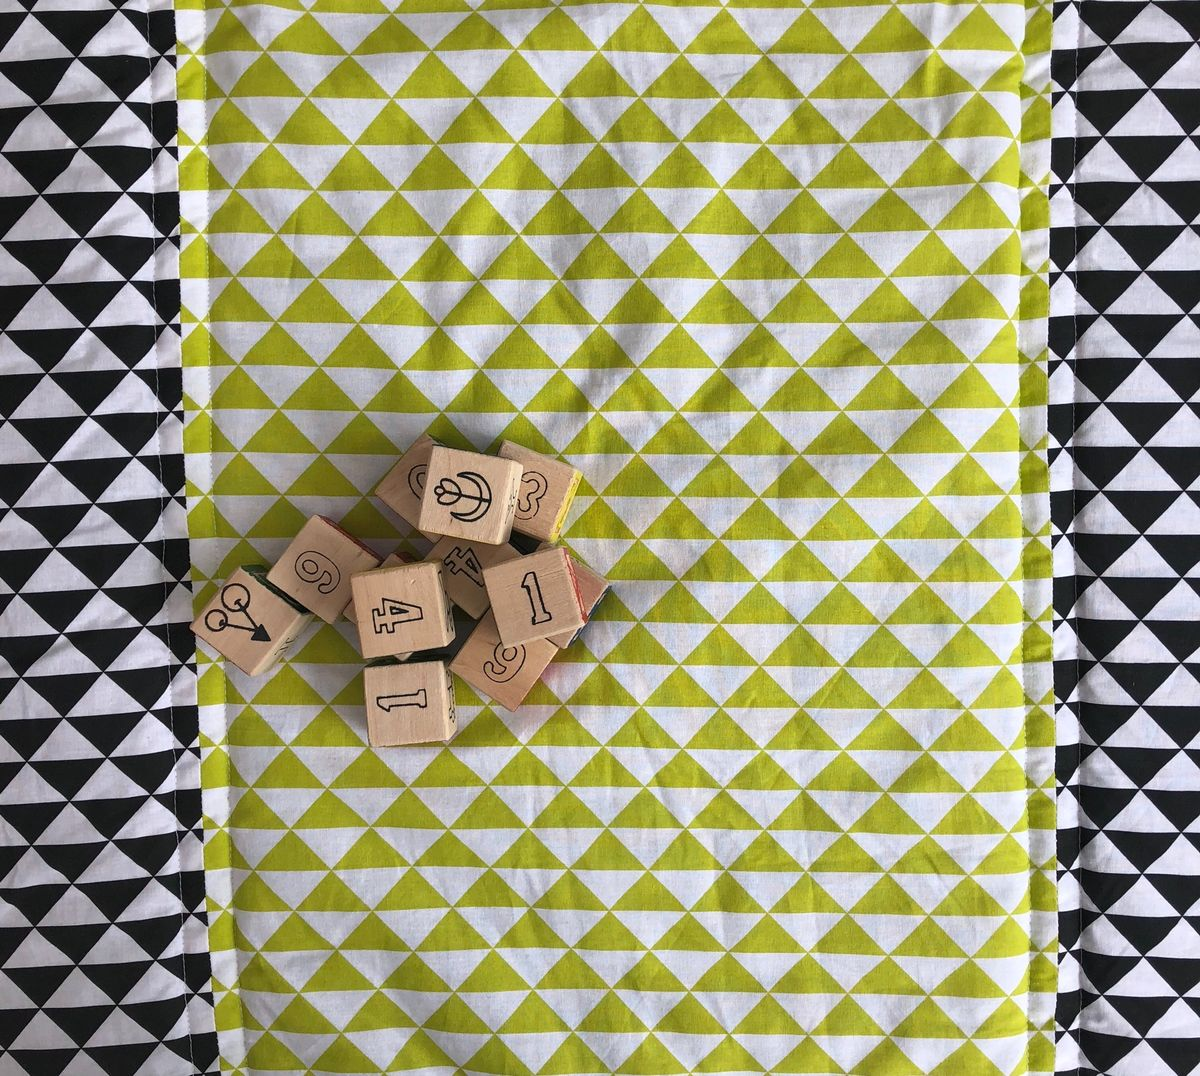 Contemporary geometric patterned quilted baby play mat, monochrome and lime green - product images  of